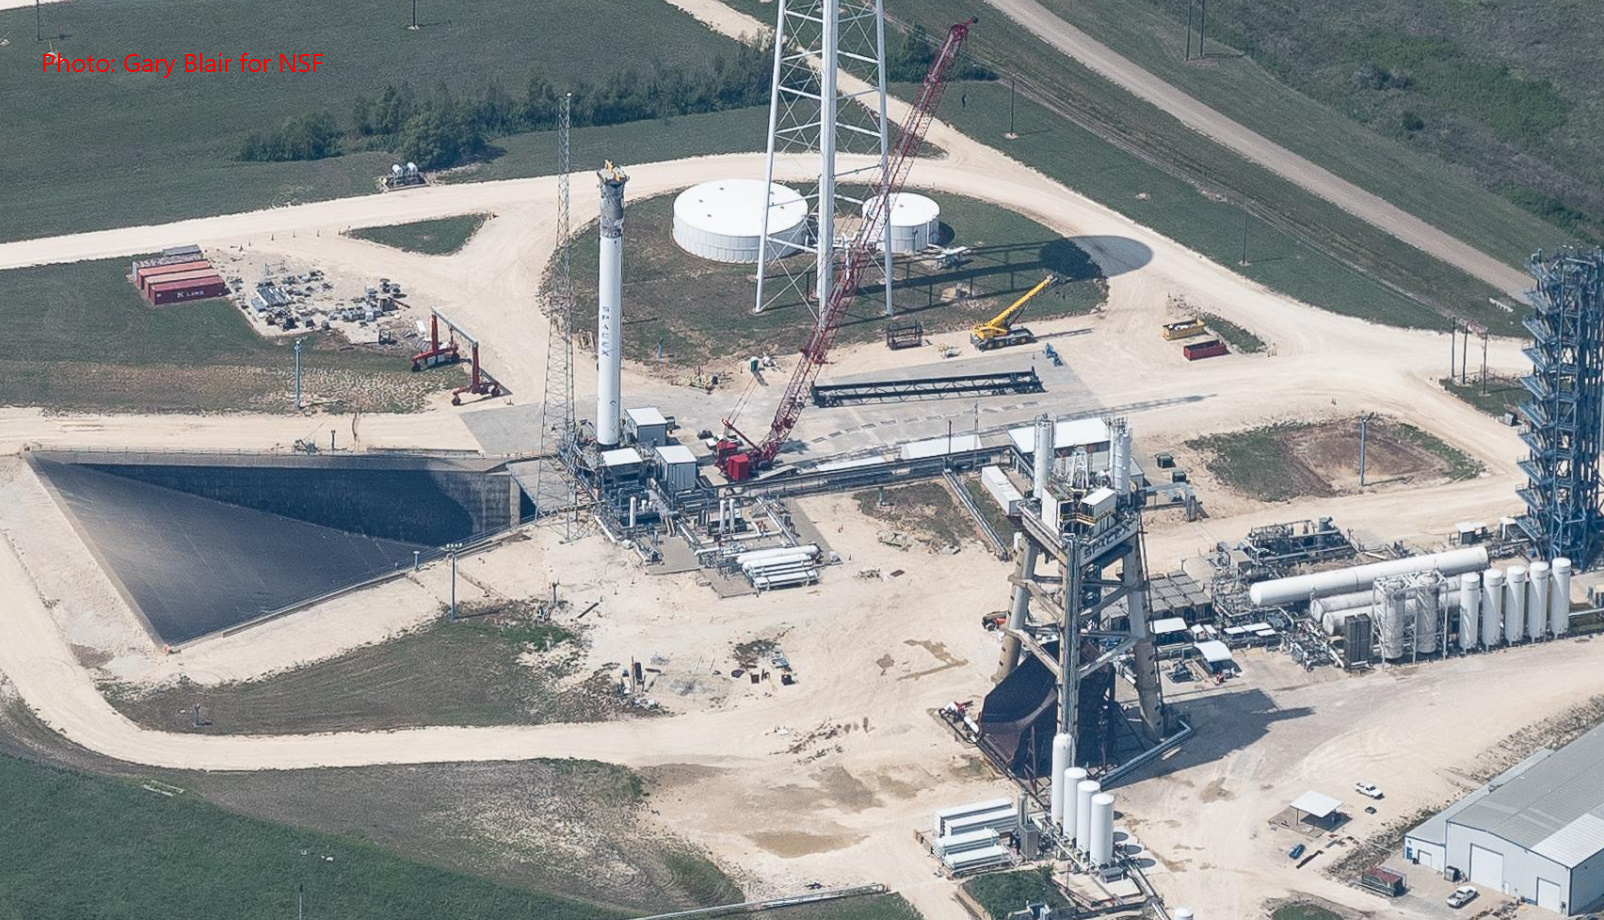 SpaceX Manifest Takes Shape as Falcon Heavy Hardware Arrives at McGregor